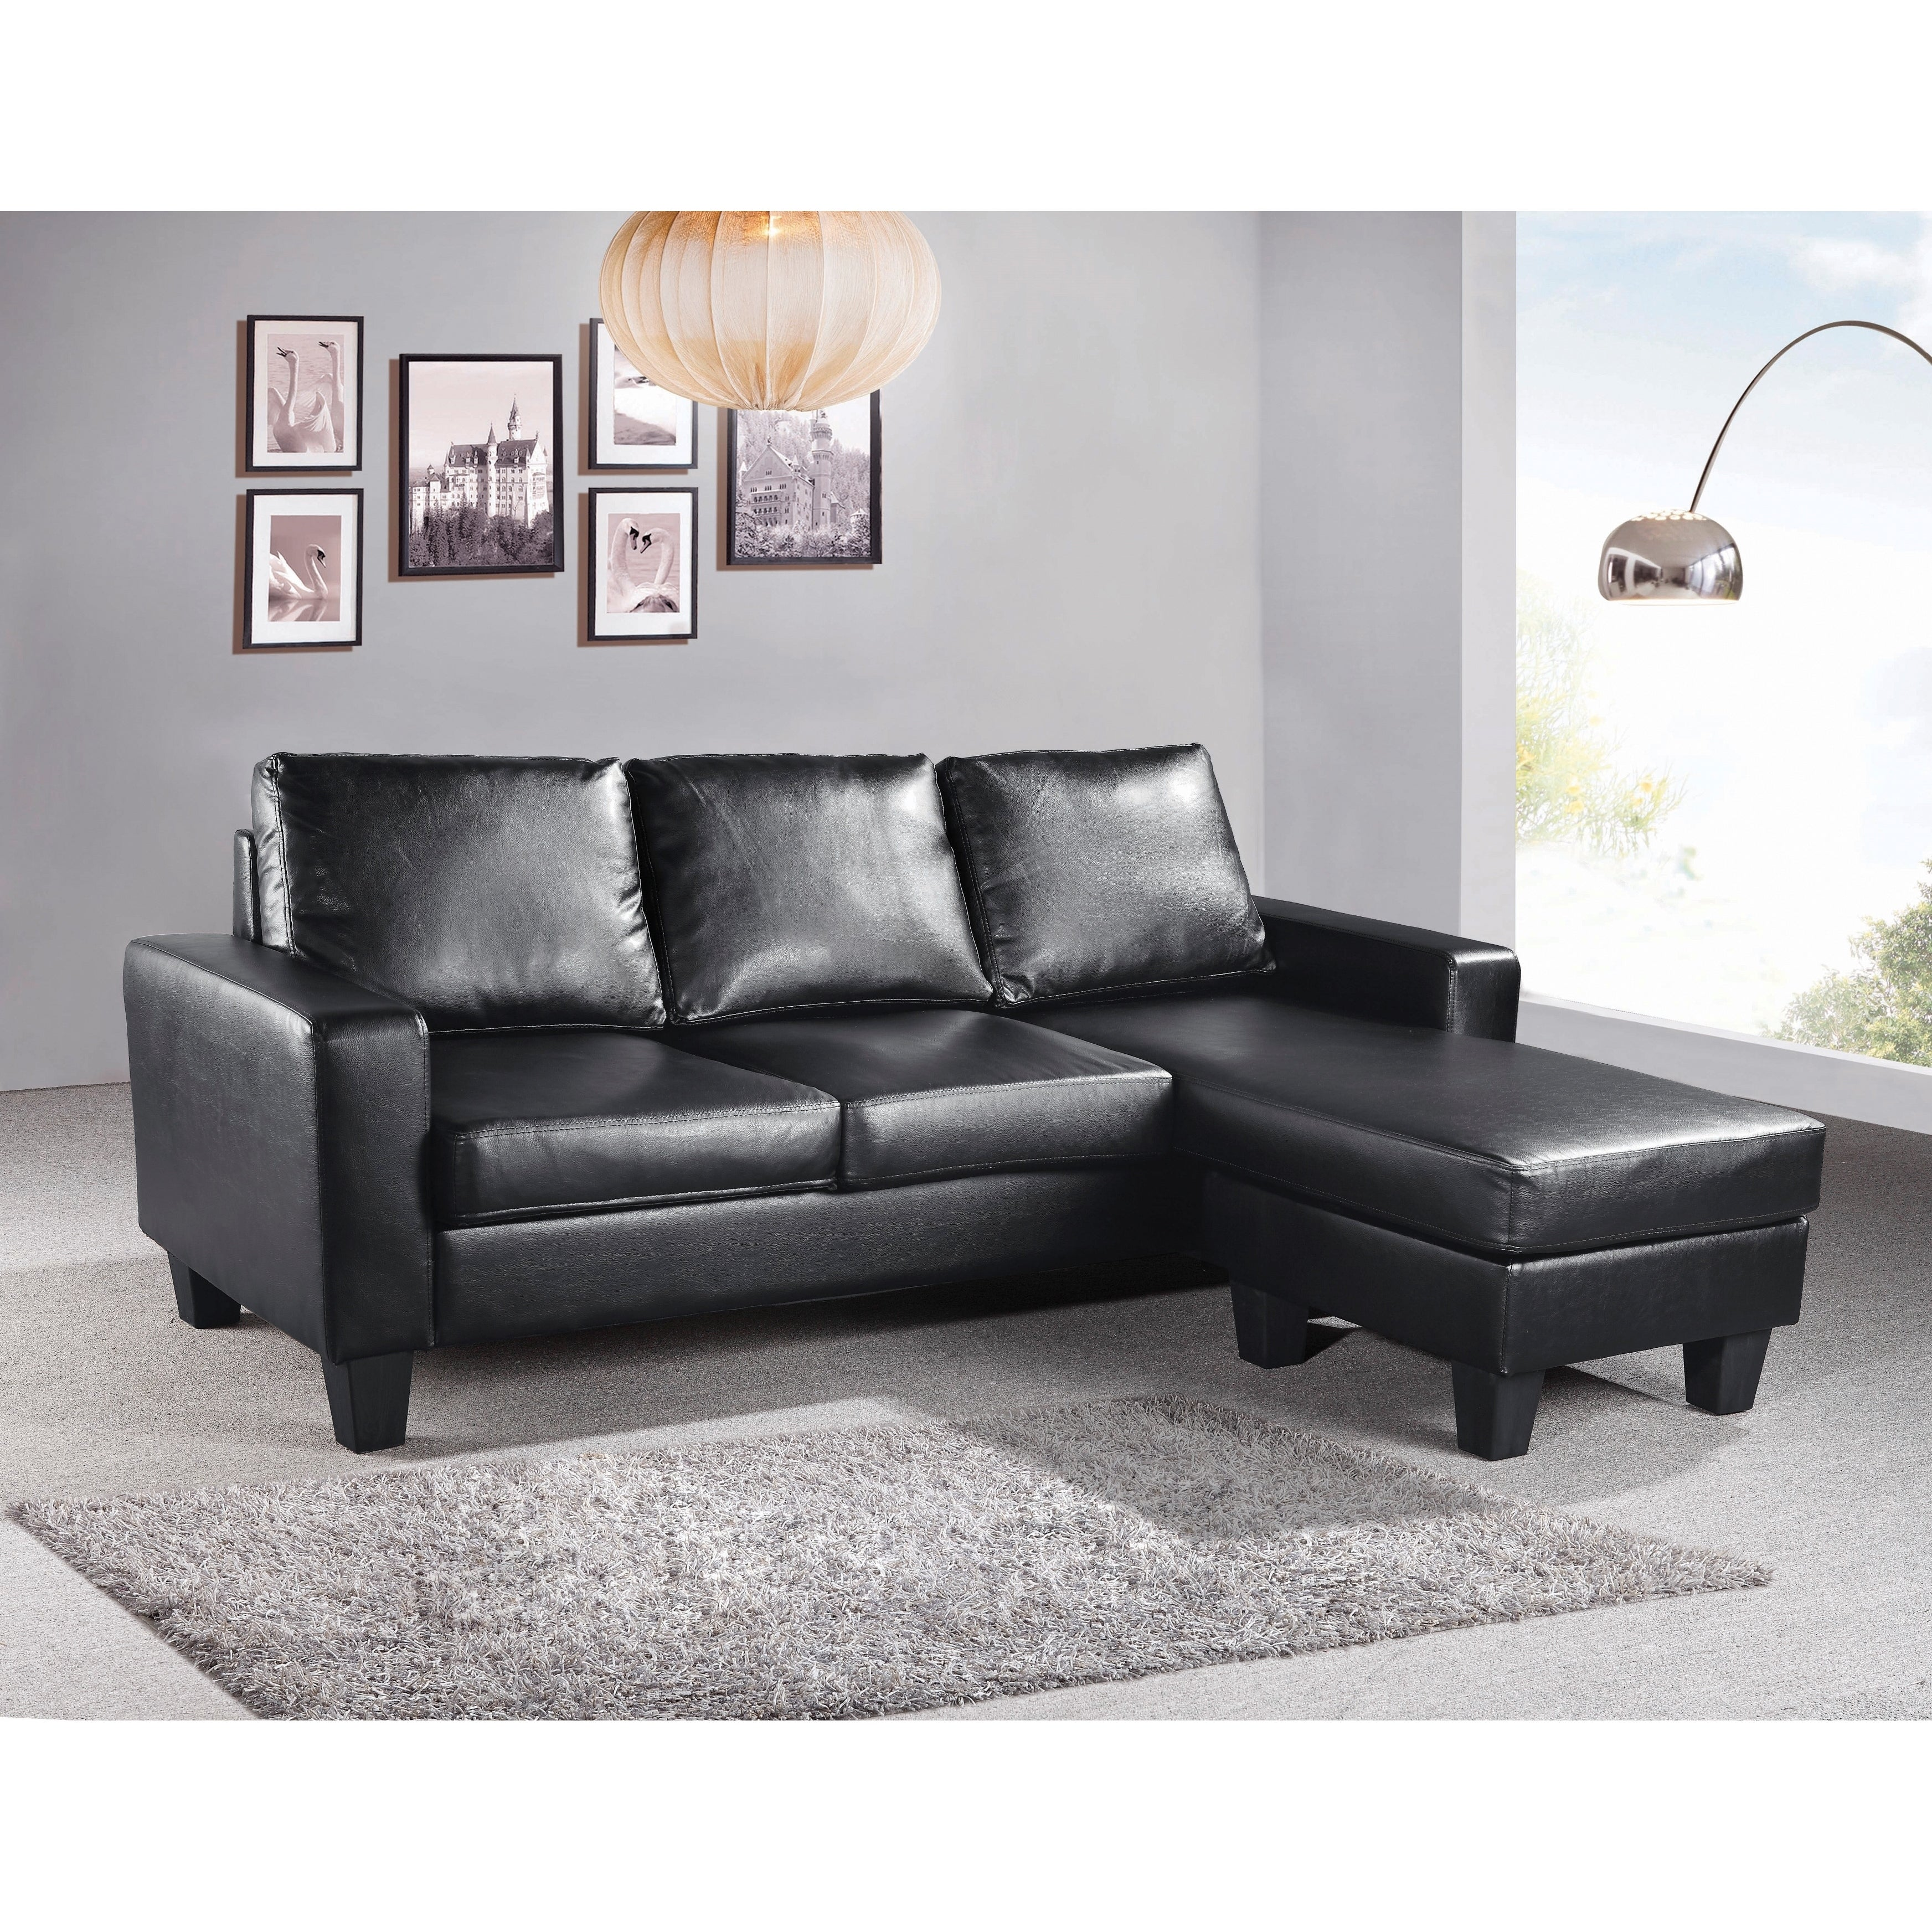 Lyke Home Reversible Apartment Sofa Chaise On Free Shipping Today 15925545